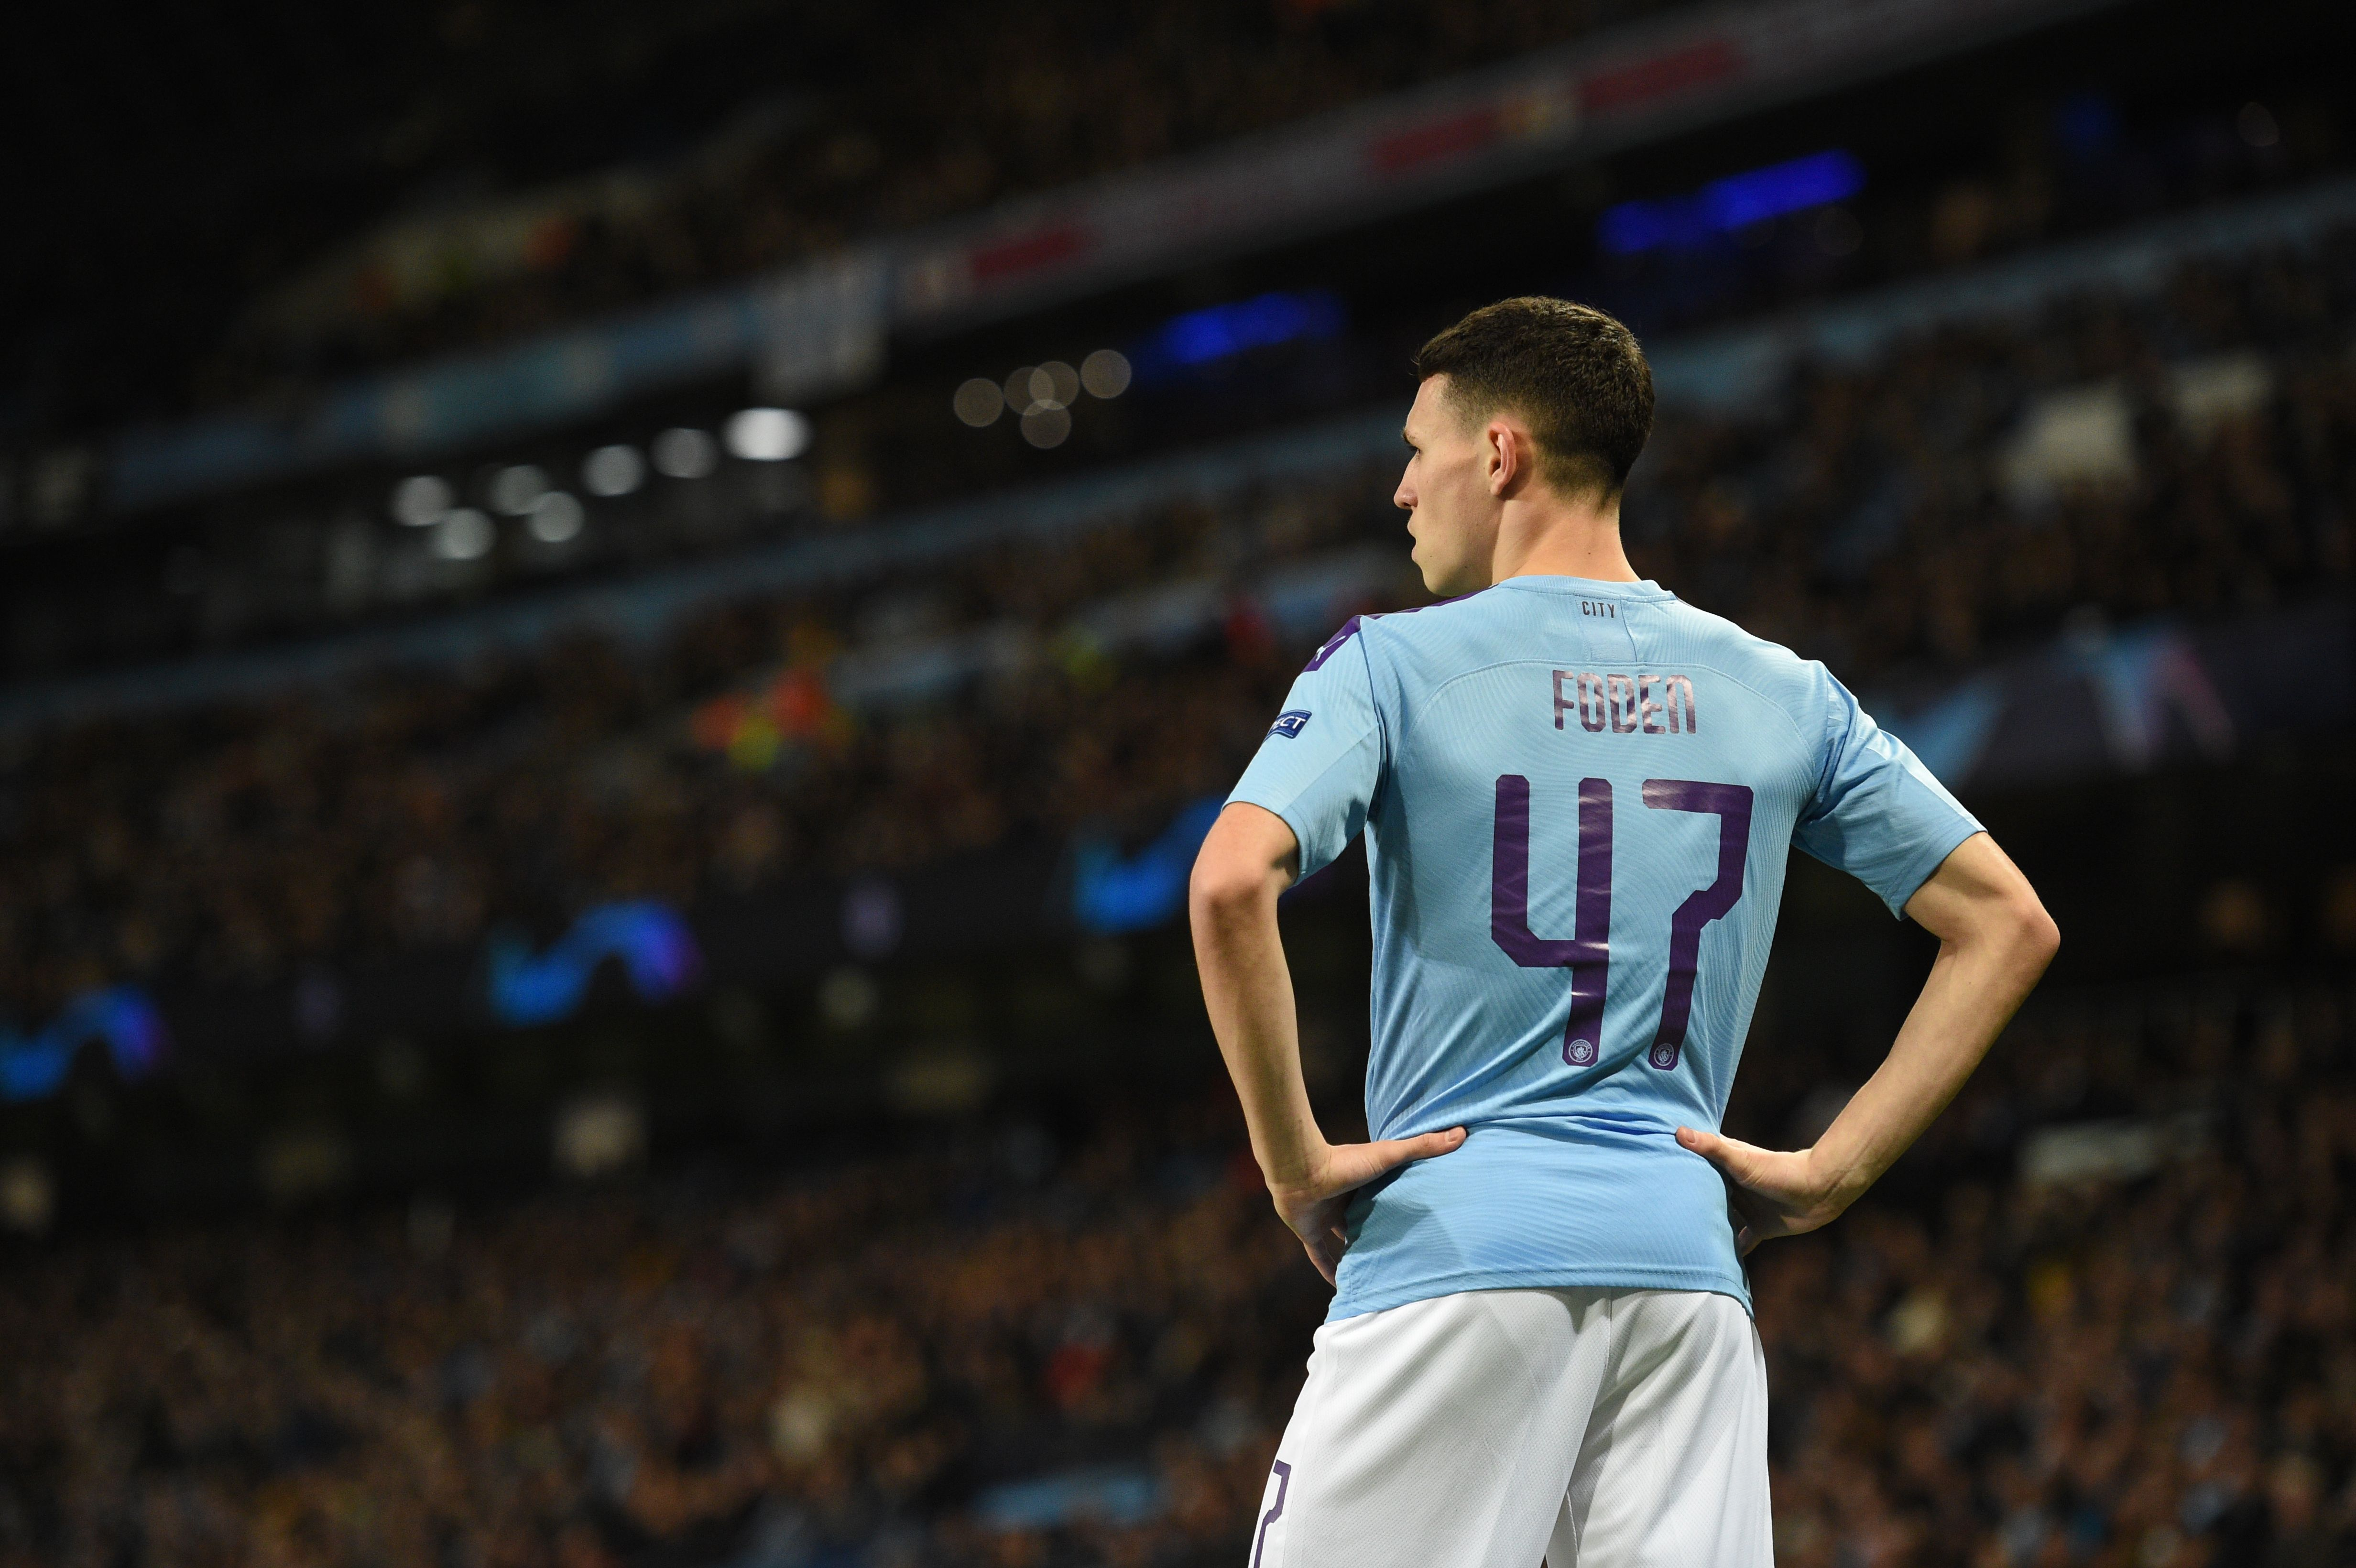 Foden is set to miss out for Manchester City. (Photo by Oli Scarff/AFP via Getty Images)